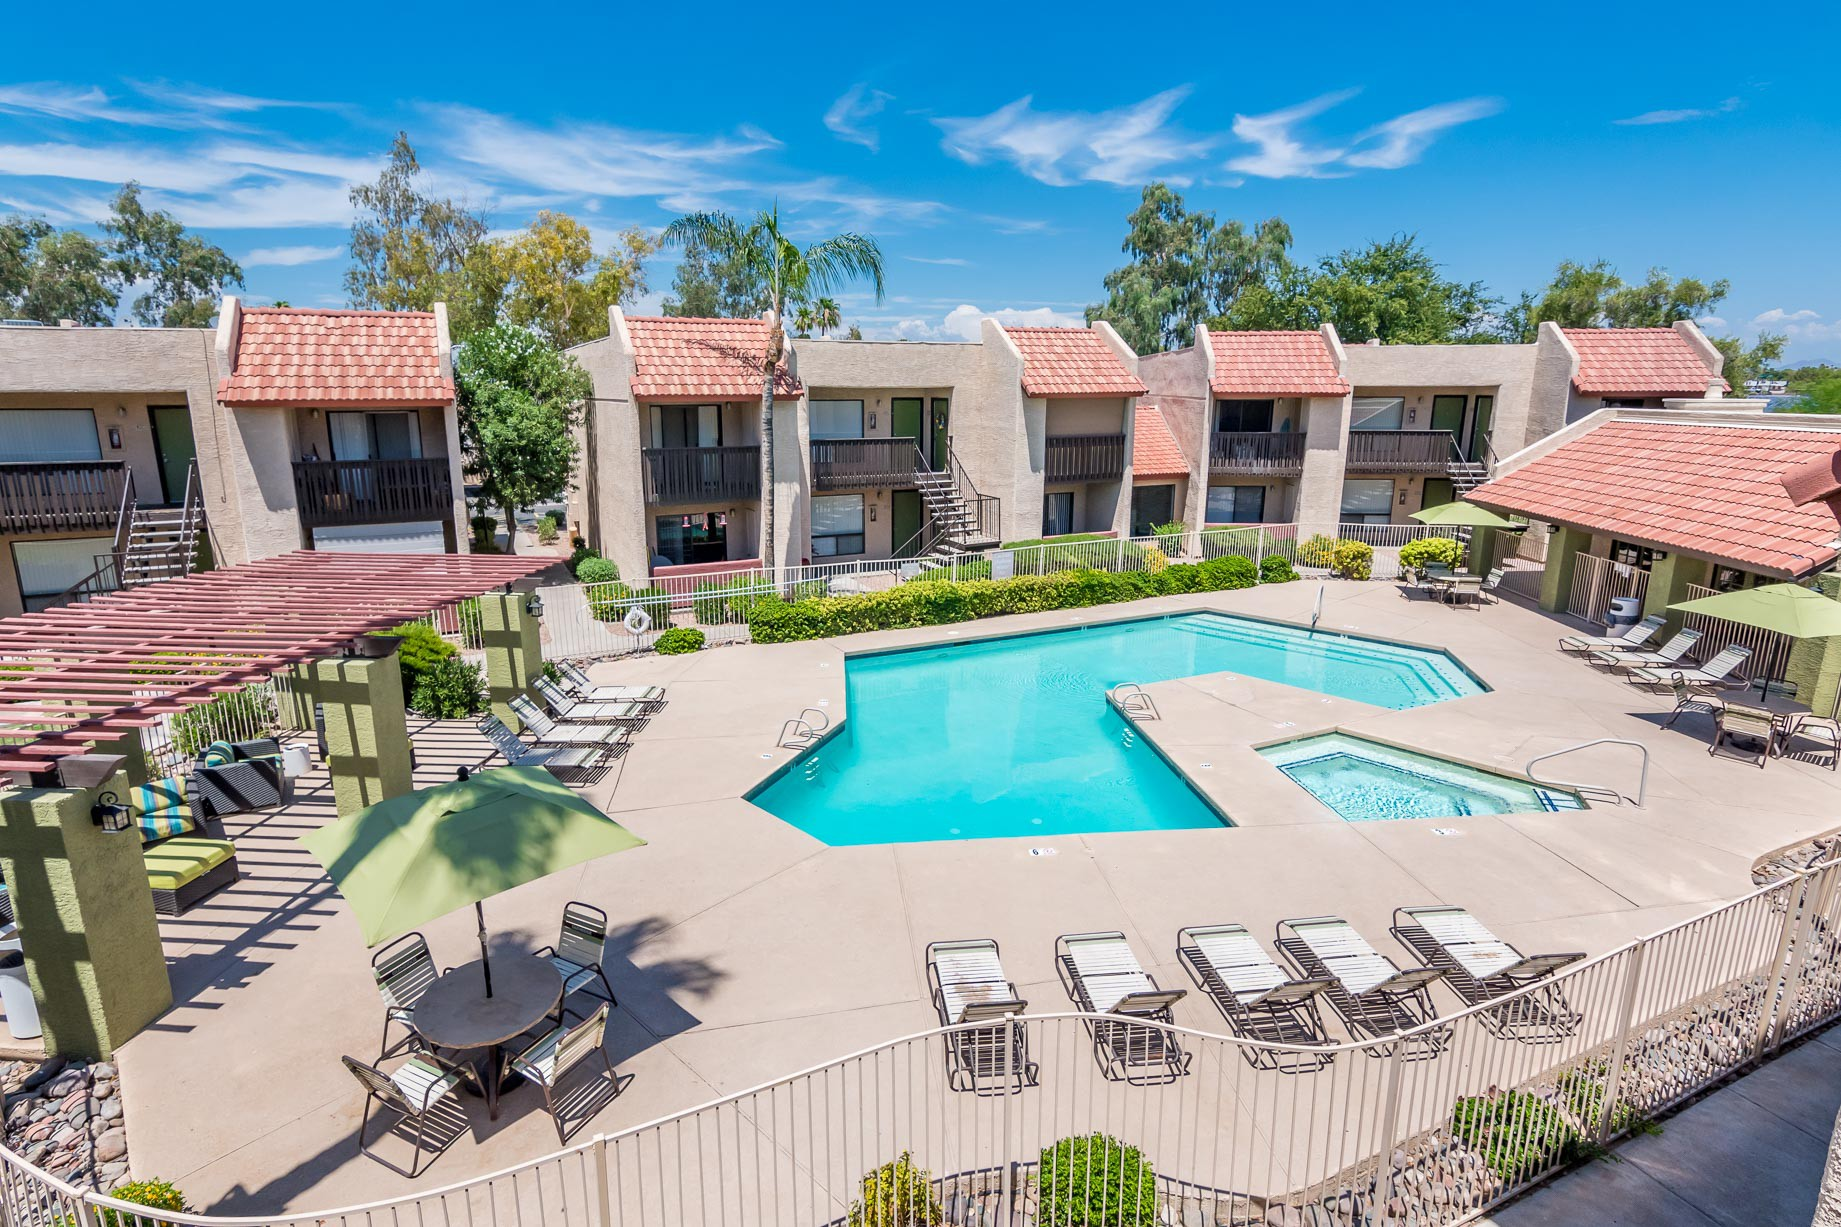 Glenridge Apartments